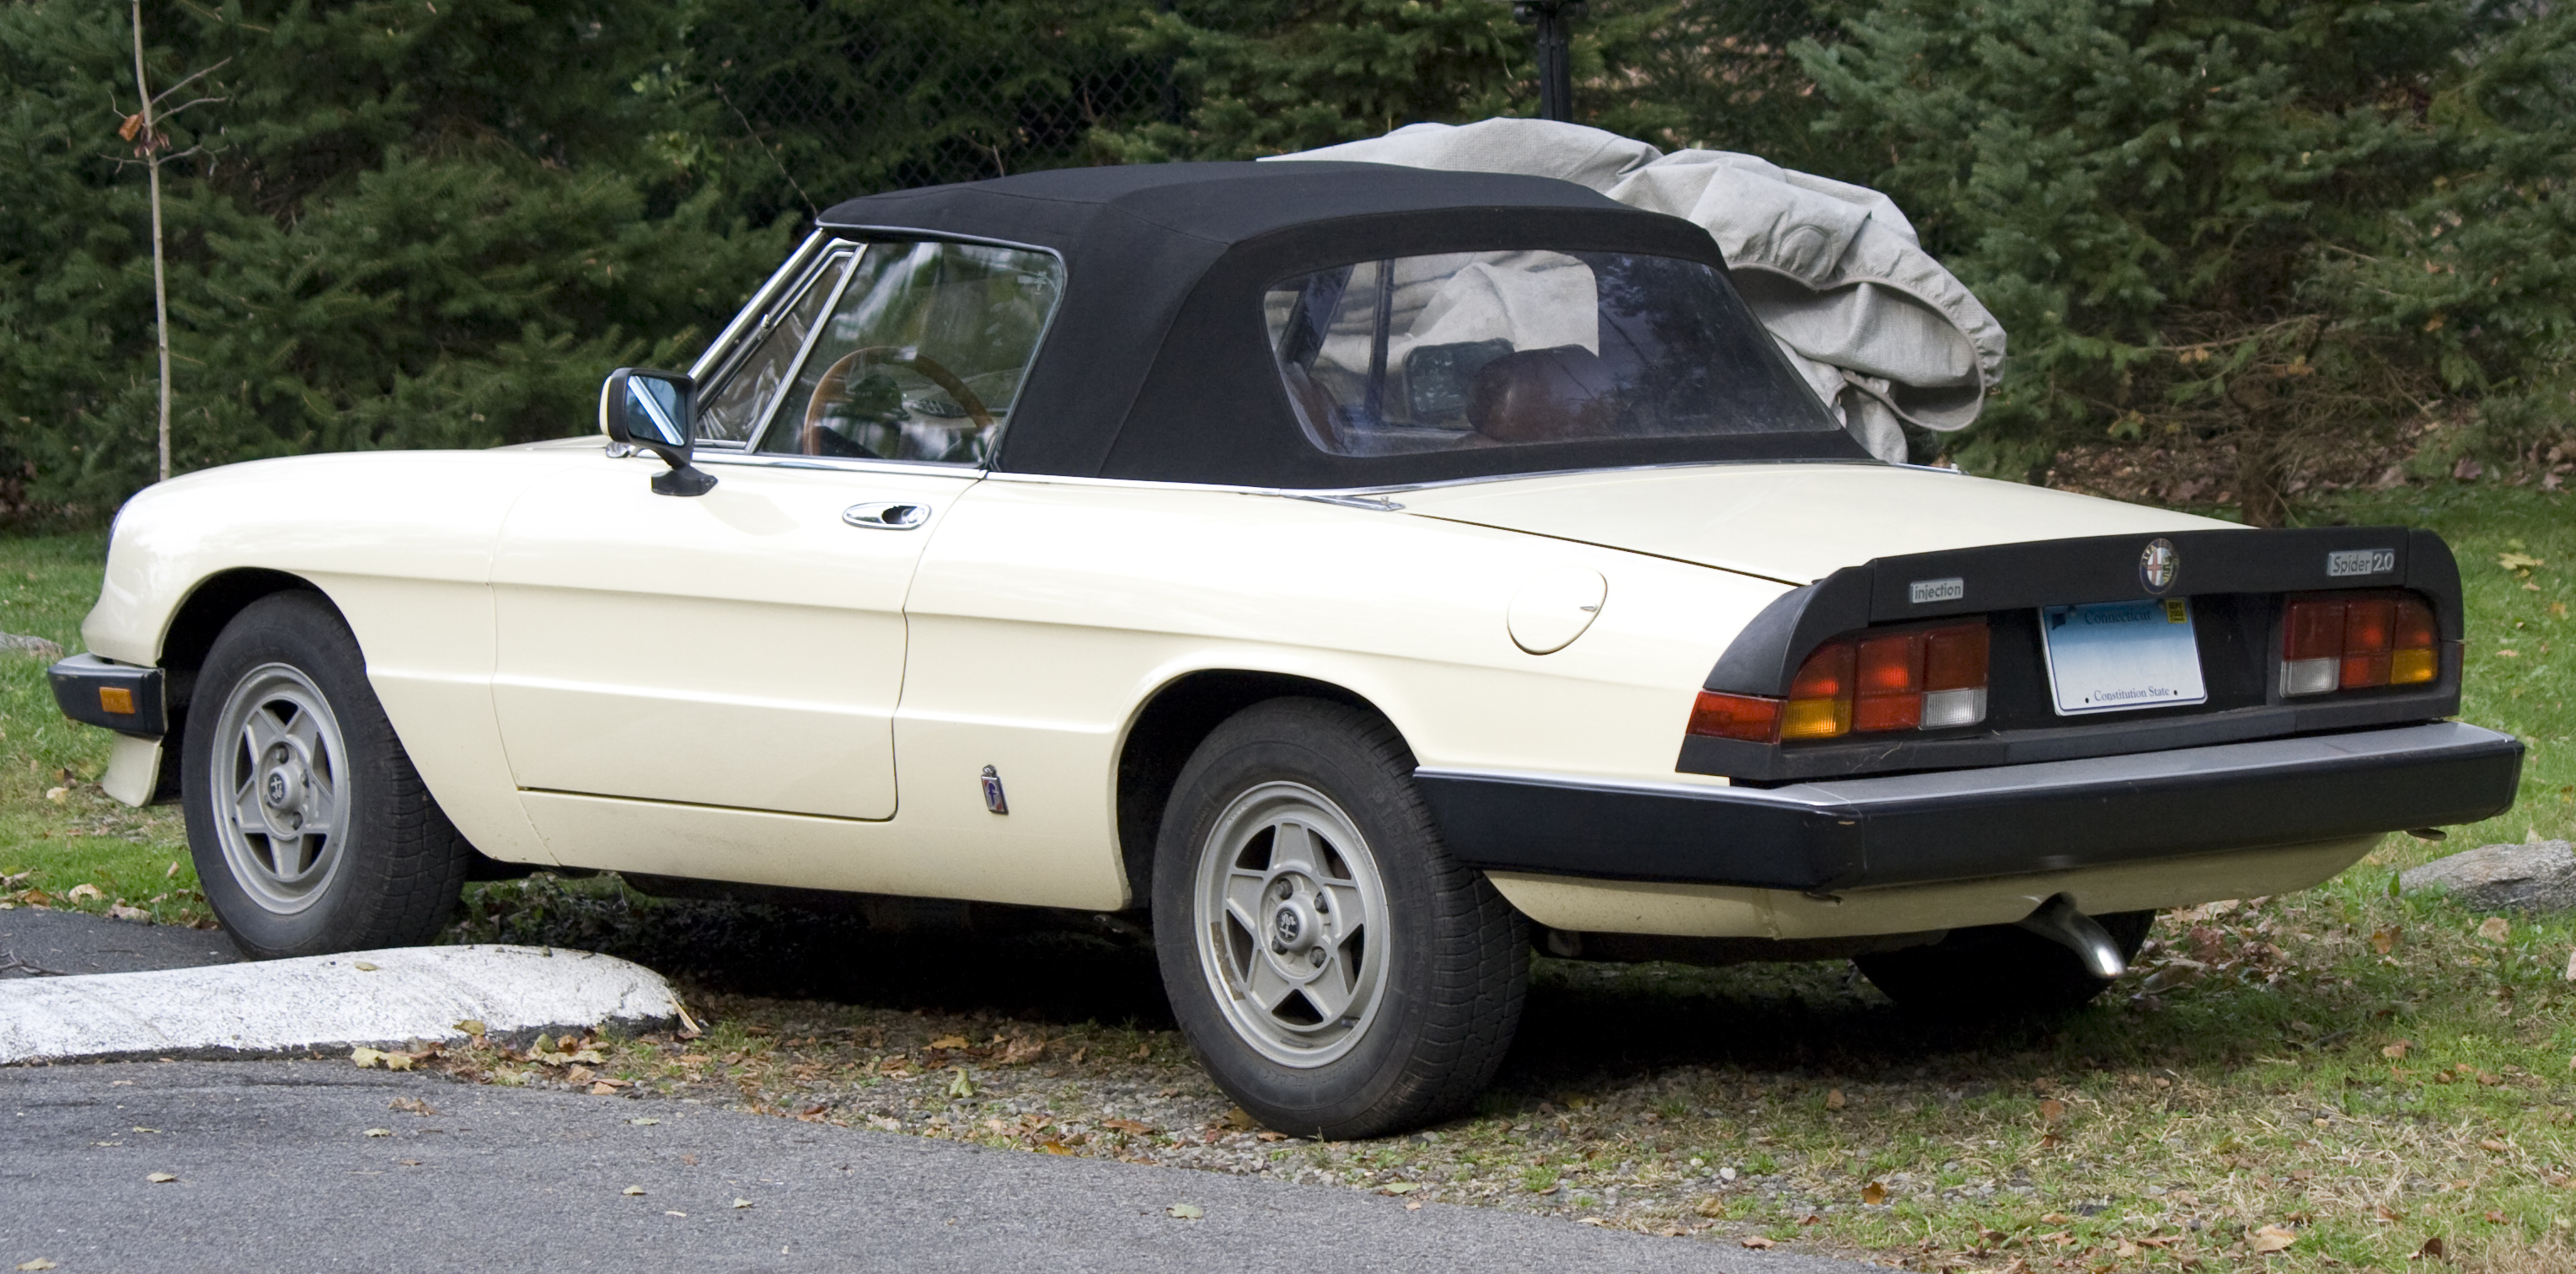 File:1984 Beige Alfa Spider rear.jpg - Wikimedia Commons